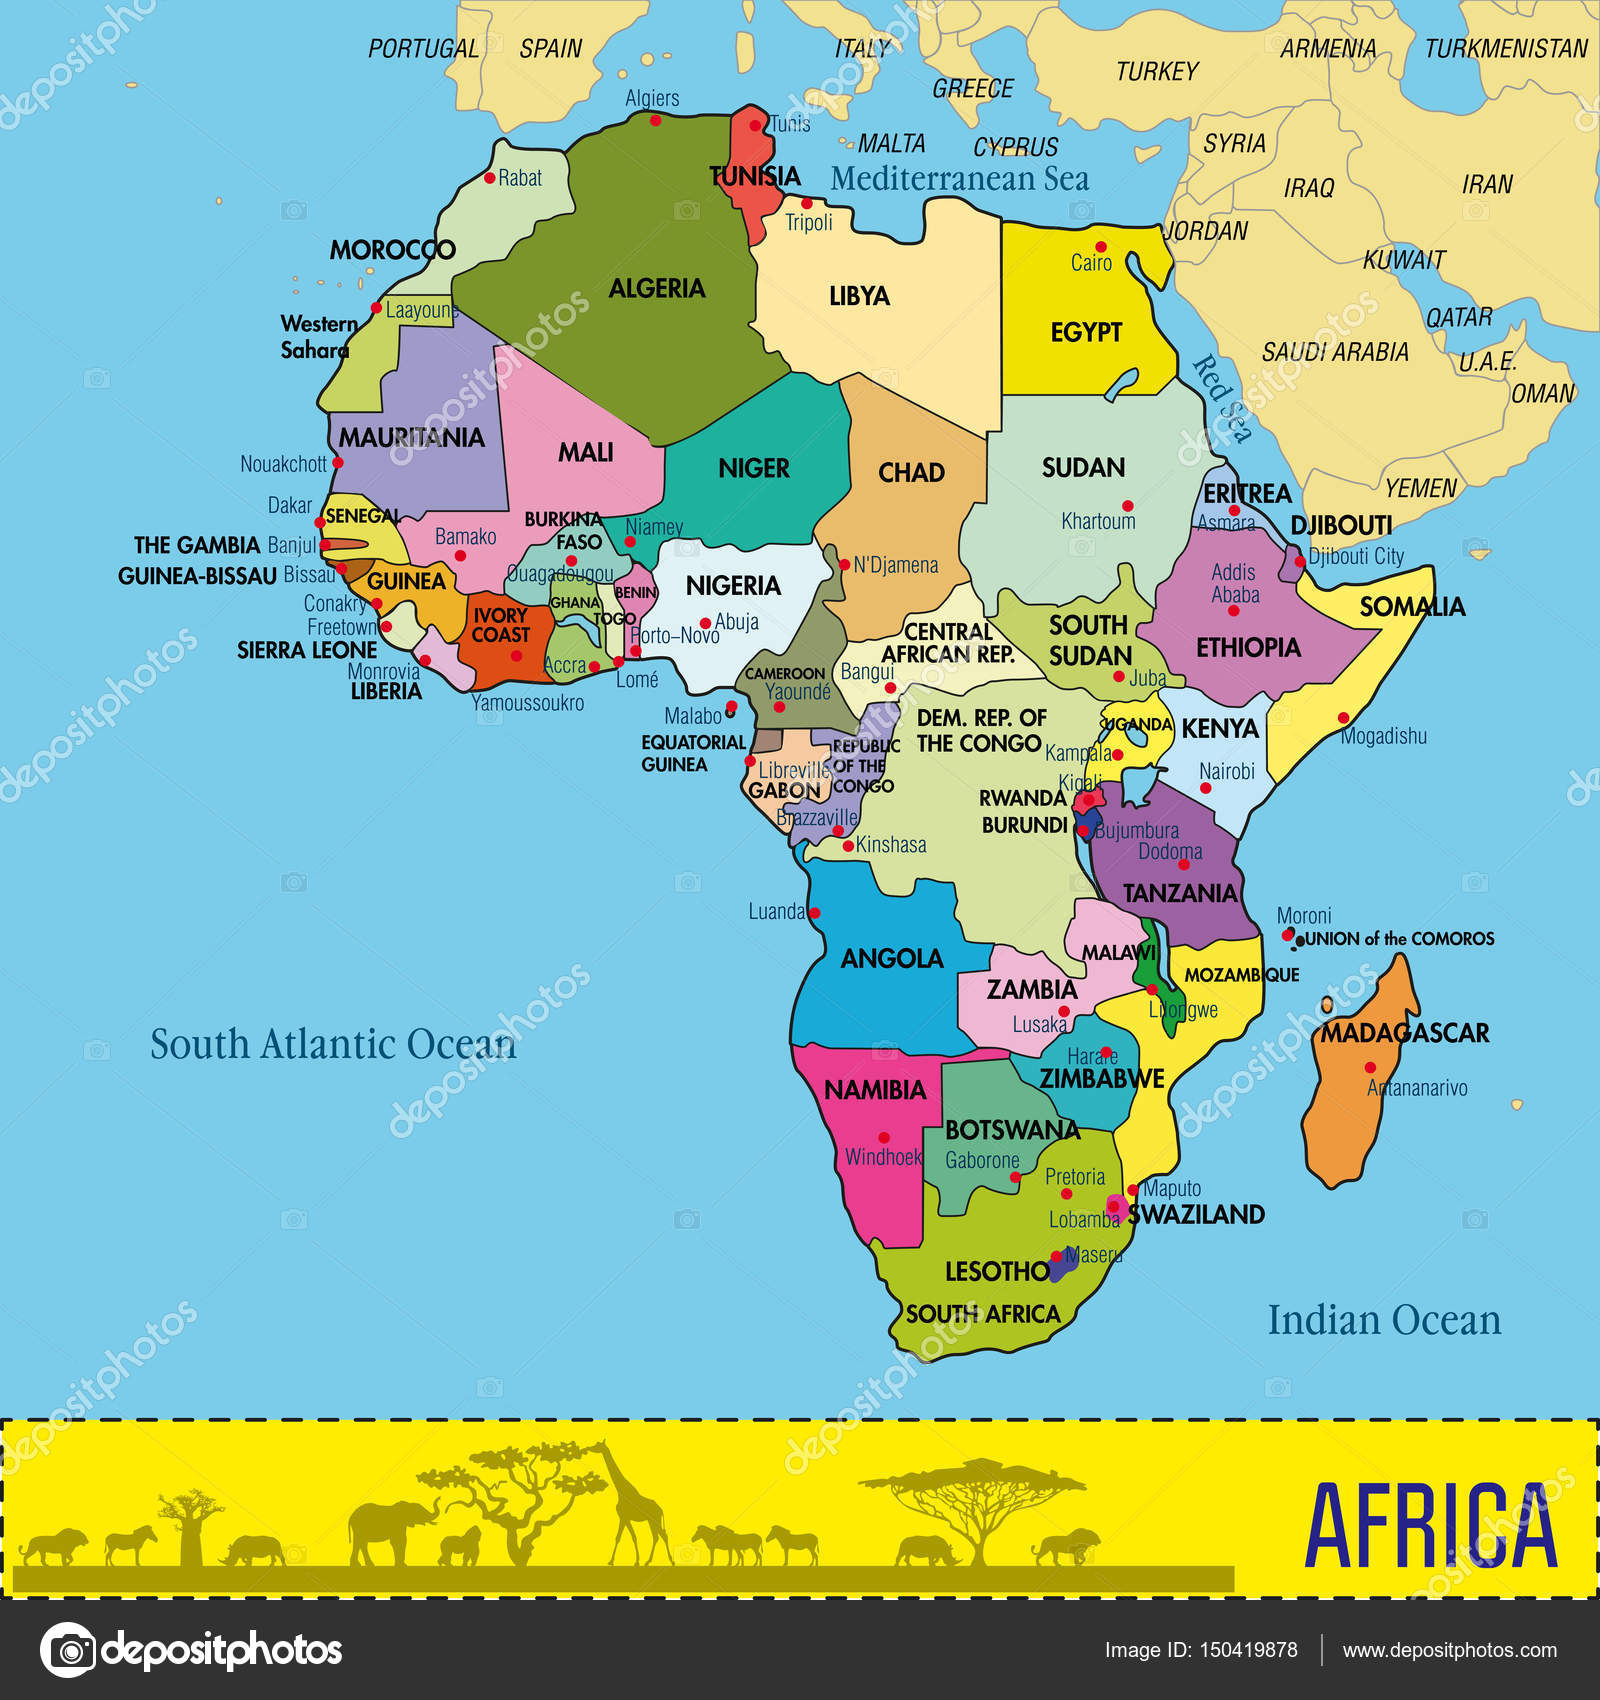 Map Of Africa With All Countries And Their Capitals Stock Vector